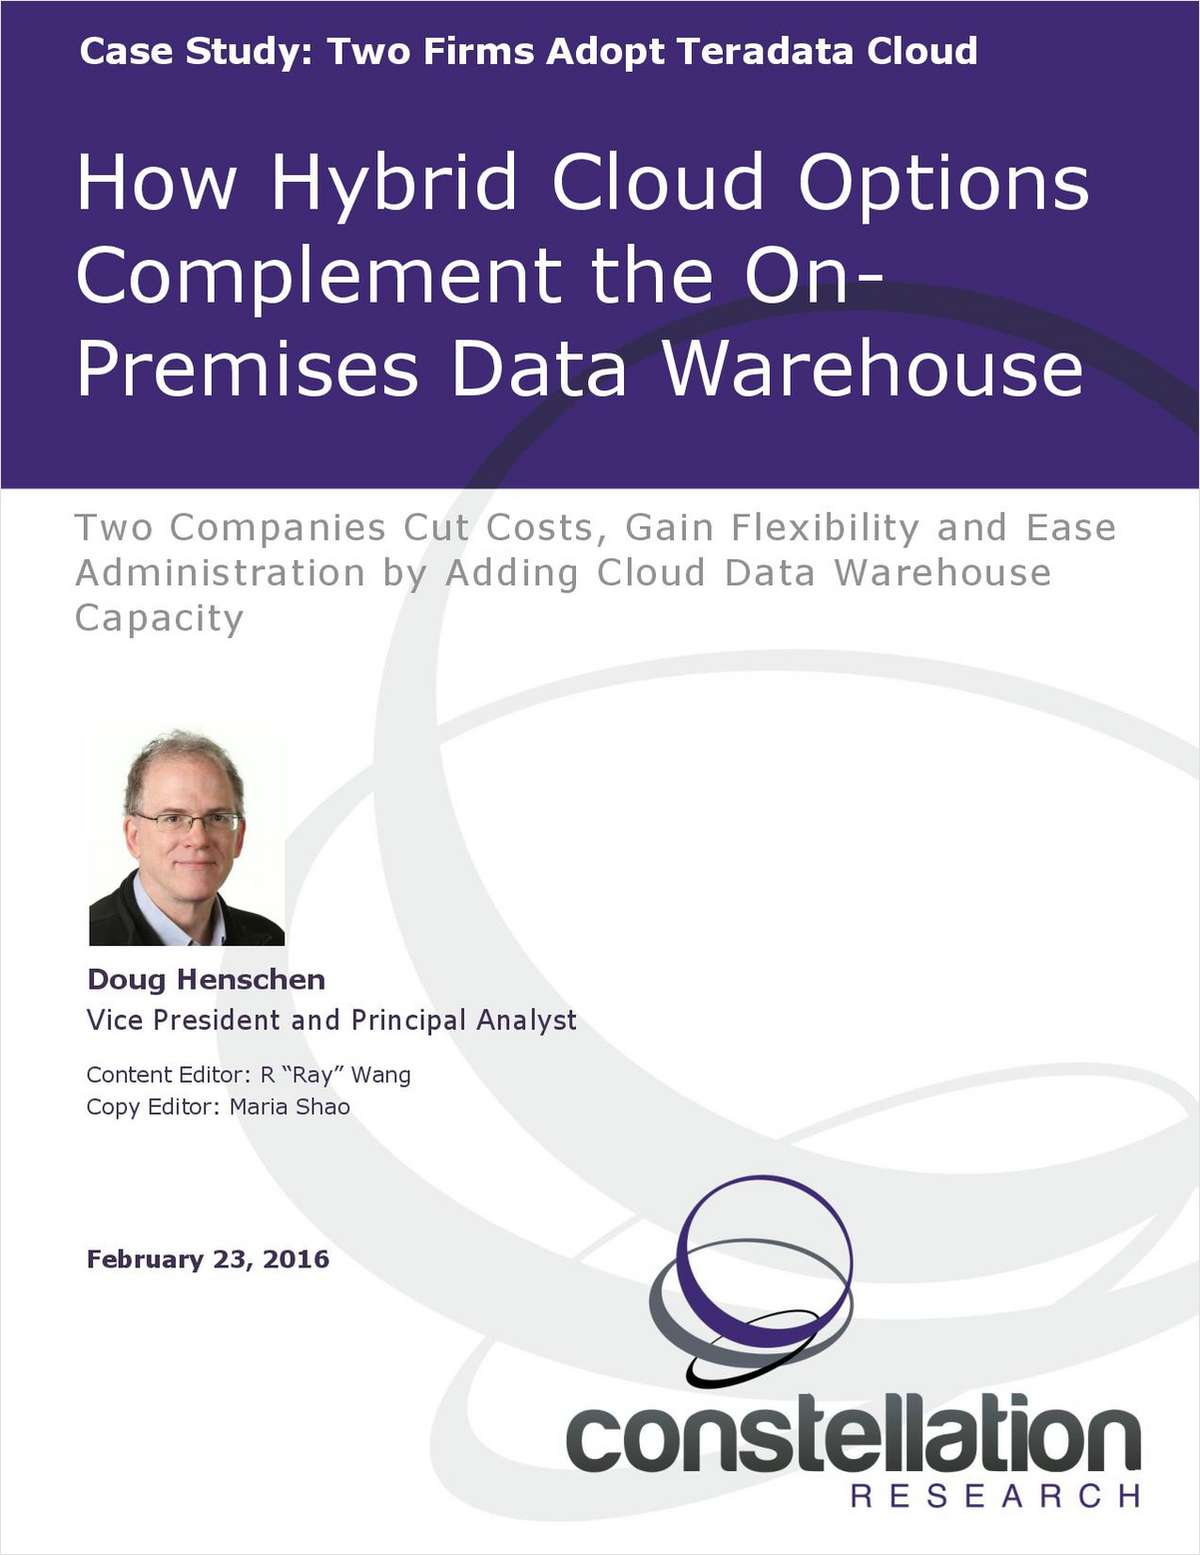 How Hybrid Cloud Options Complement the On Premises Data Warehouse